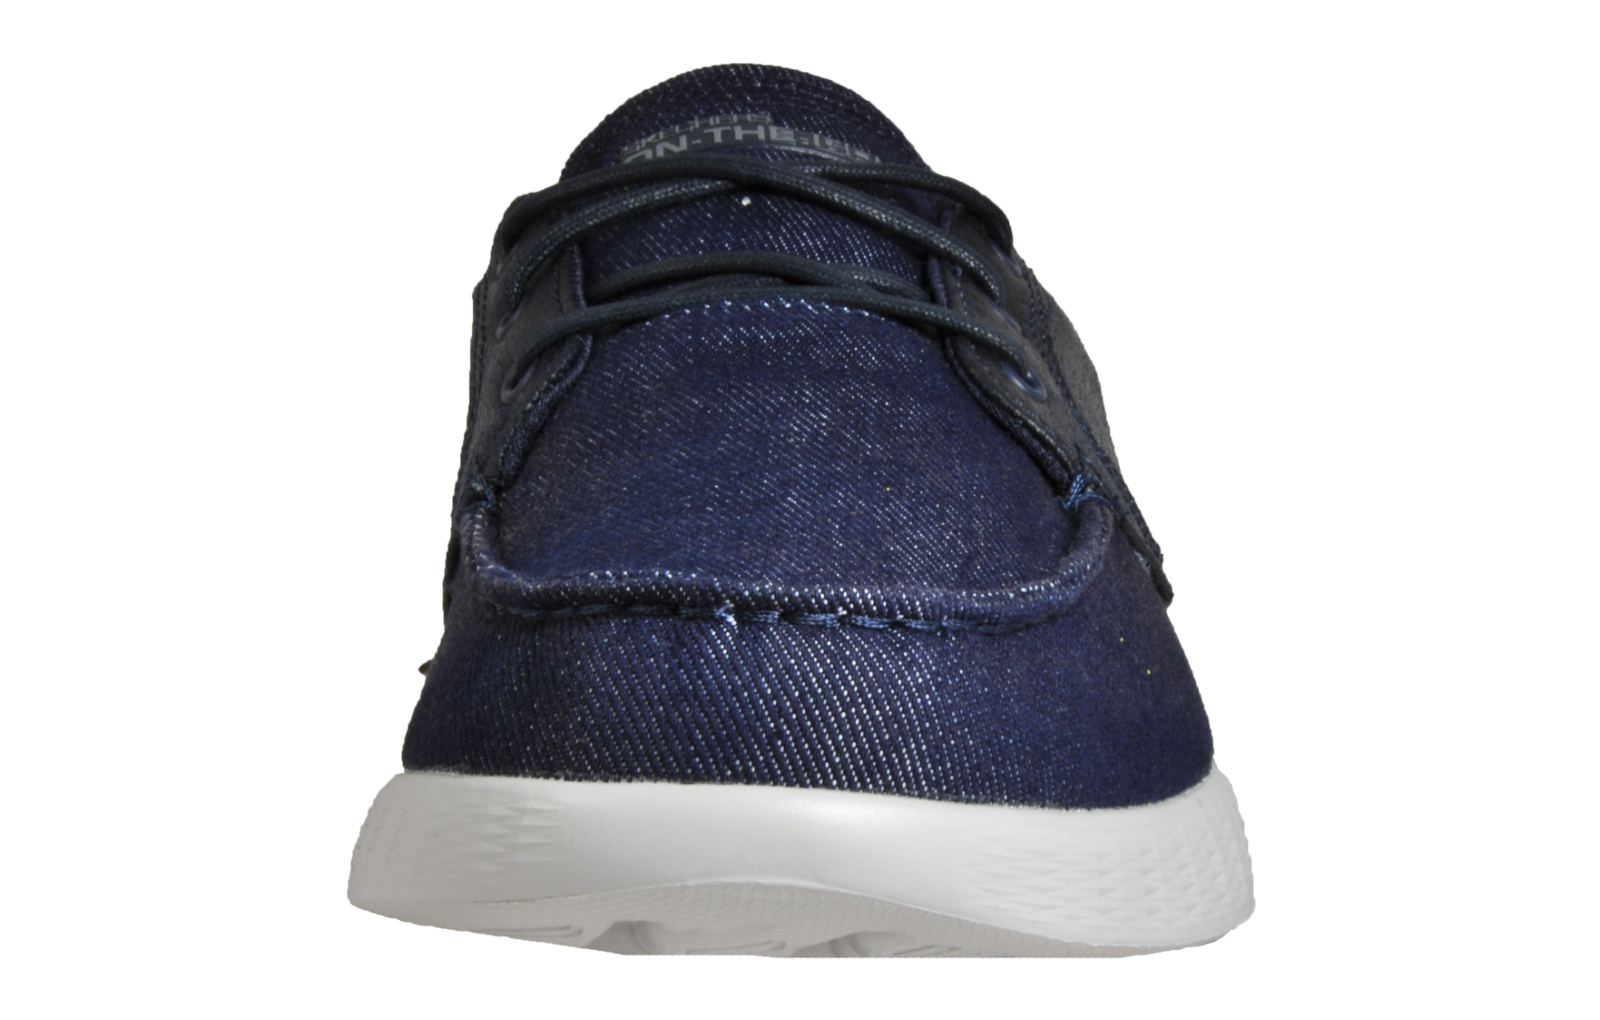 6e0fef0a09c Skechers Mens On The Go Comfort Deck Shoes Lace Up Loafers Navy